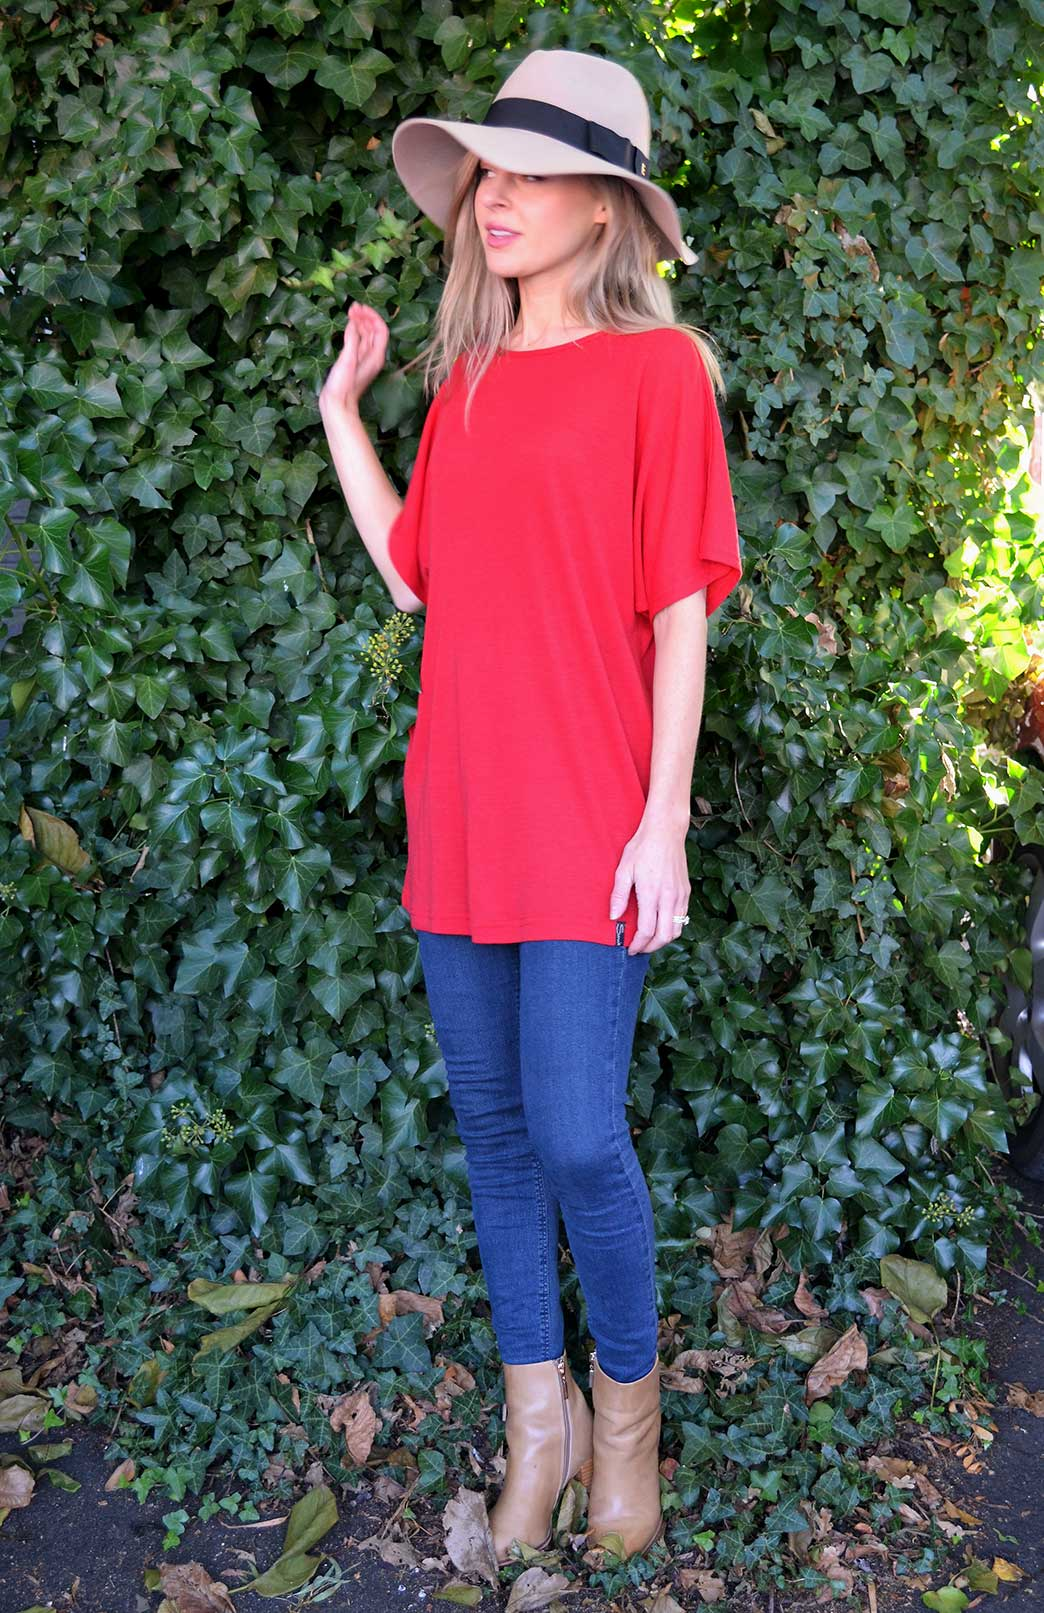 Loose T-Shirt - Women's Loose Wool Red Summer Top - Smitten Merino Tasmania Australia